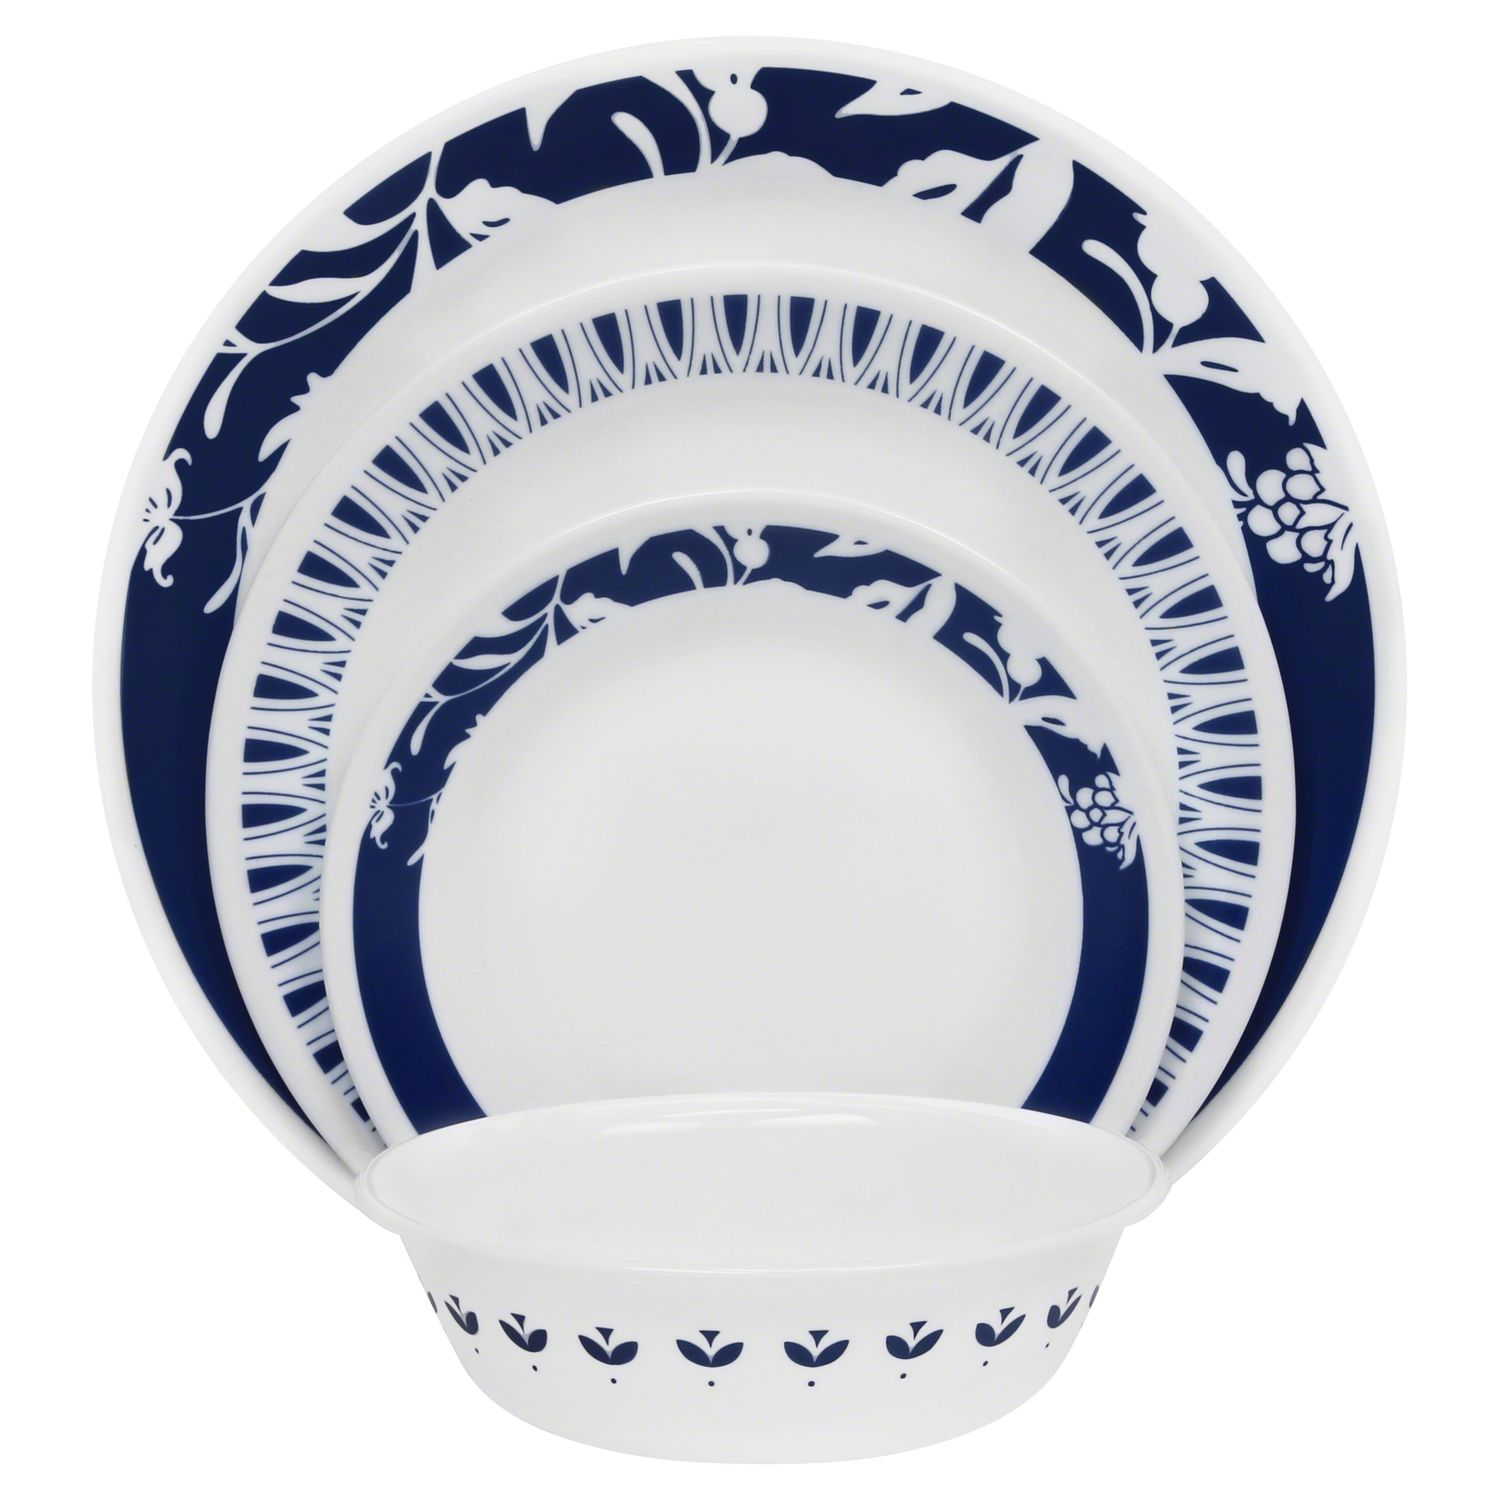 Boutique Uptowne Blue Mavi 16-pc Dinnerware Set  sc 1 st  Designer Dinnerware Sets & Boutique Uptowne Blue Mavi 16-pc Dinnerware Set Review | Corelle ...